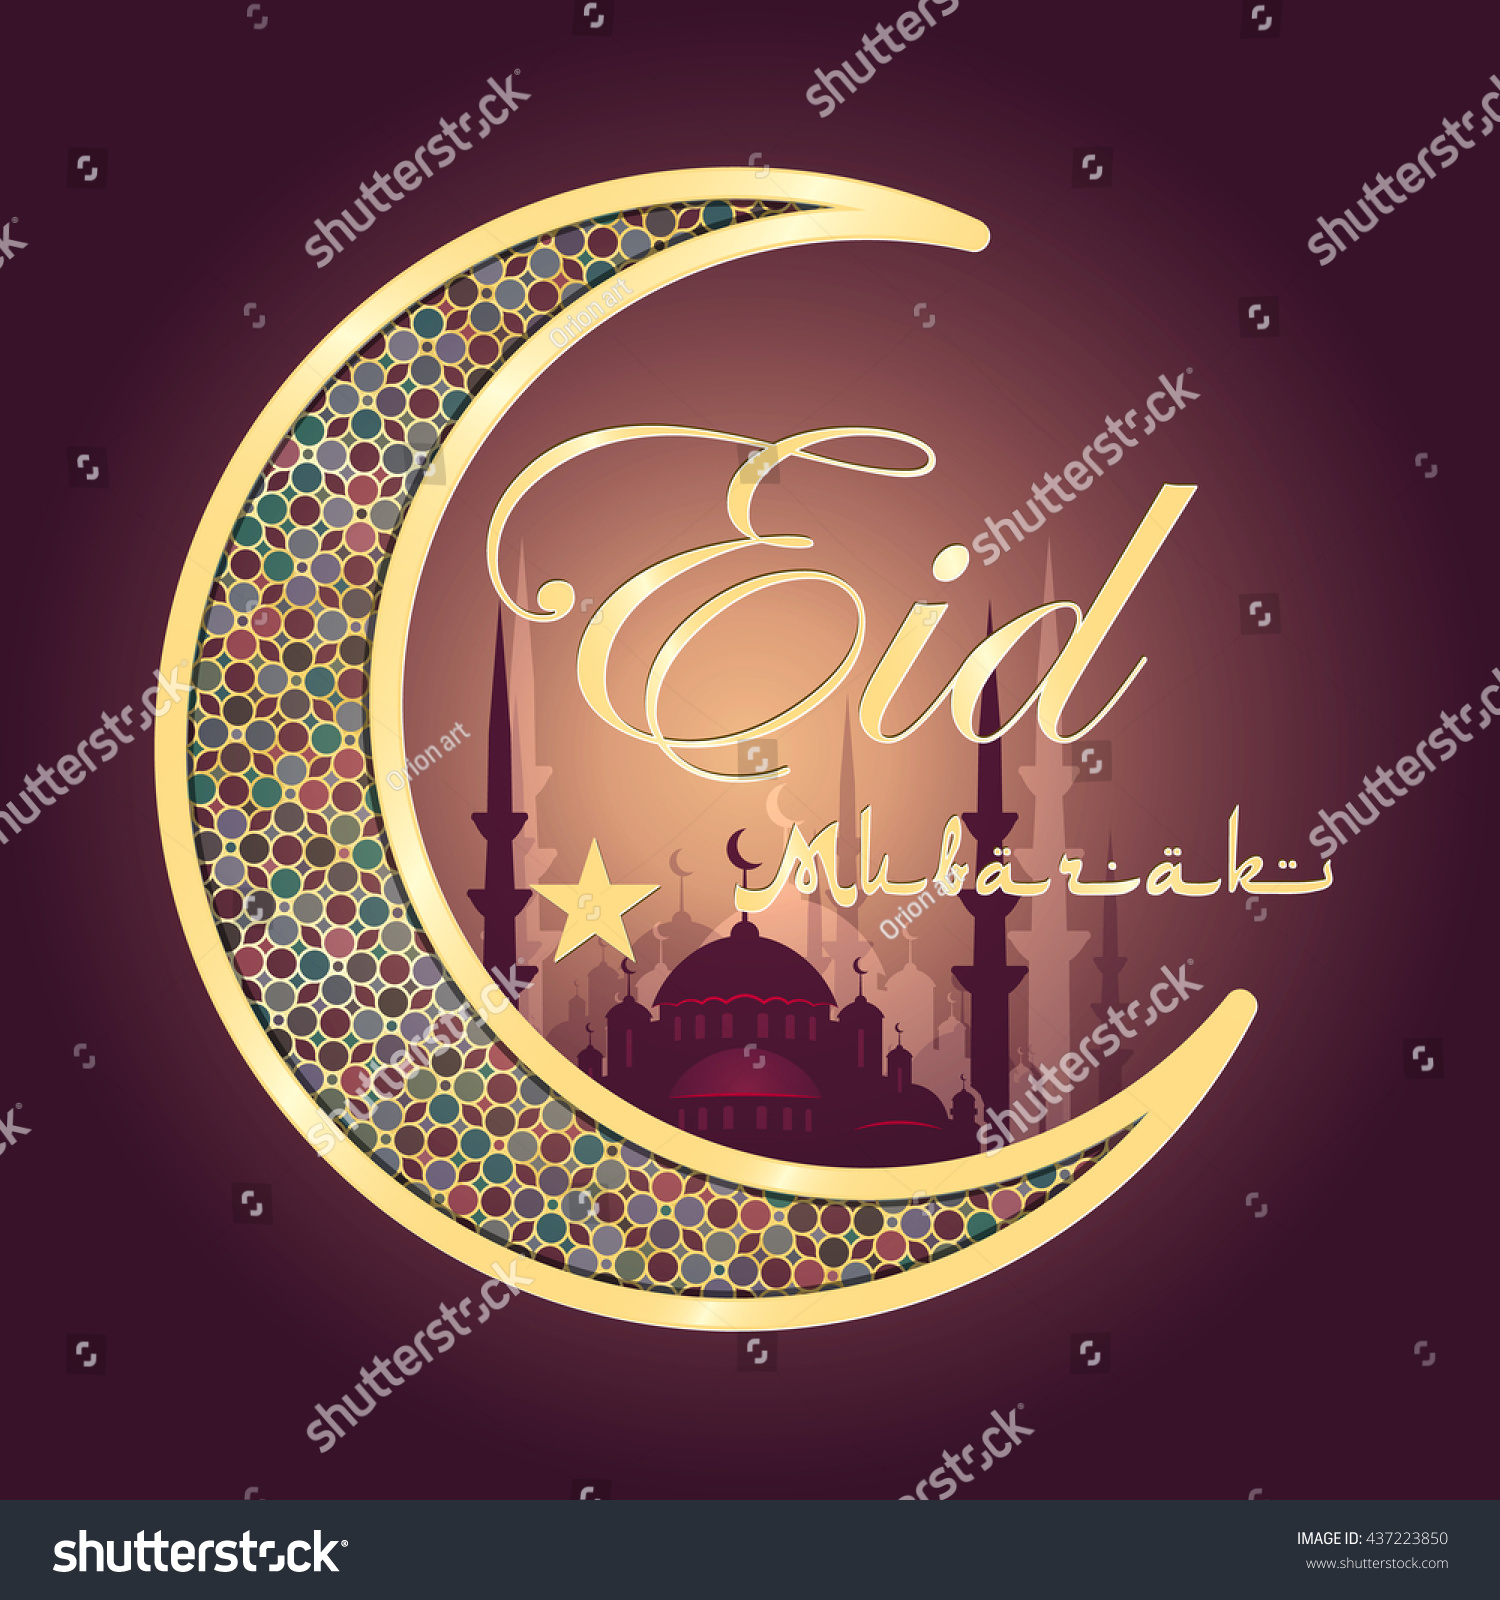 Download Idd Eid Al-Fitr Feast - stock-vector-calligraphy-of-arabic-text-eid-al-fitr-feast-of-breaking-the-fast-holiday-greeting-card-in-437223850  Collection_621918 .jpg